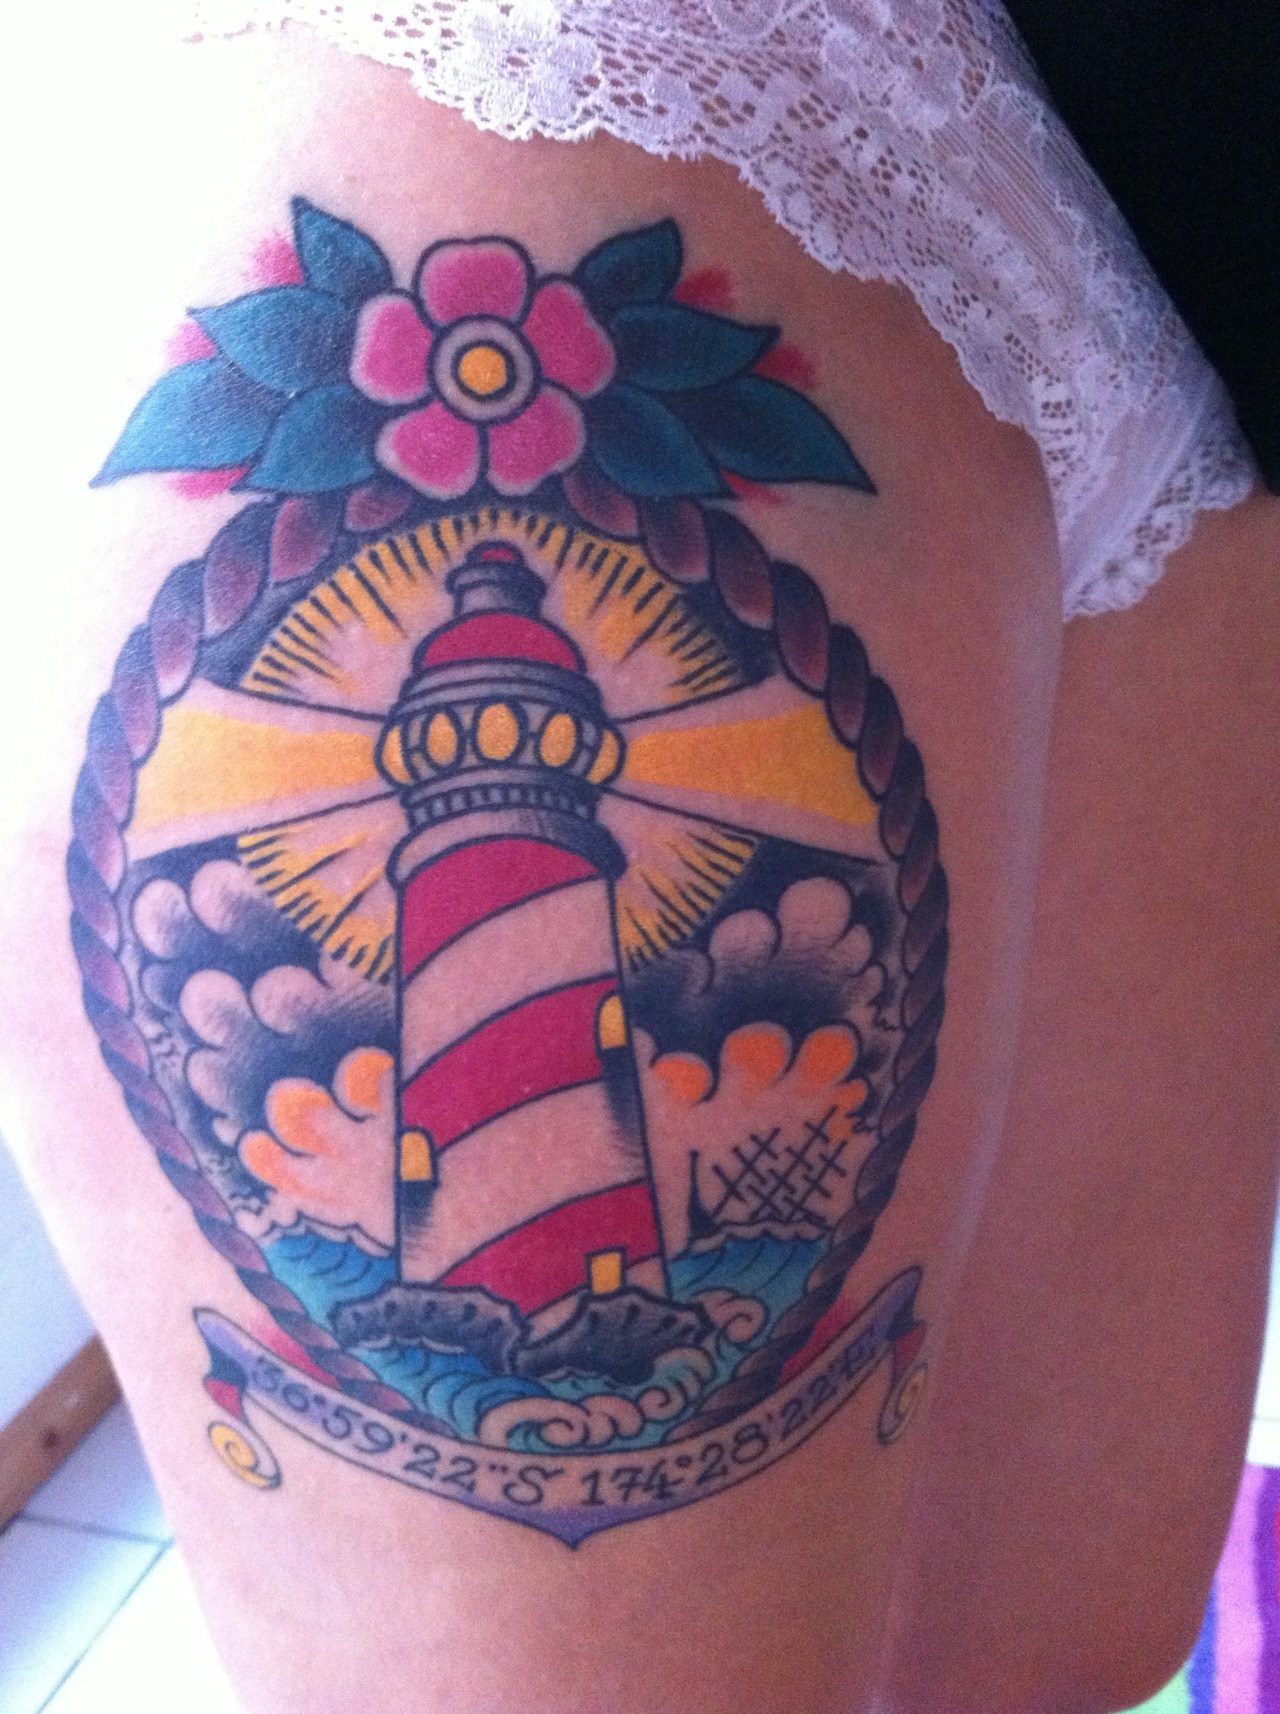 "fuckyeahtattoos:  Hello, this is my third tattoo, done by Naomi at The Tattooed Heart in Auckland, New Zealand. I got it done at the end of my trip trough New Zealand because this 5 months journey made me find myself while discovering amazing places. A lighthouse means to me finding peace through the storm. Above it you can read 36°59'22"" 174°28'22"" which is the location of the most peaceful place I've ever seen in the whole world. I got this tattoo because I felt, at this location, that I was getting over my depression and my sadness, and it makes me think about how happy I can be if I decided to. http://alenseignedelafillesanscoeur.tumblr.com"